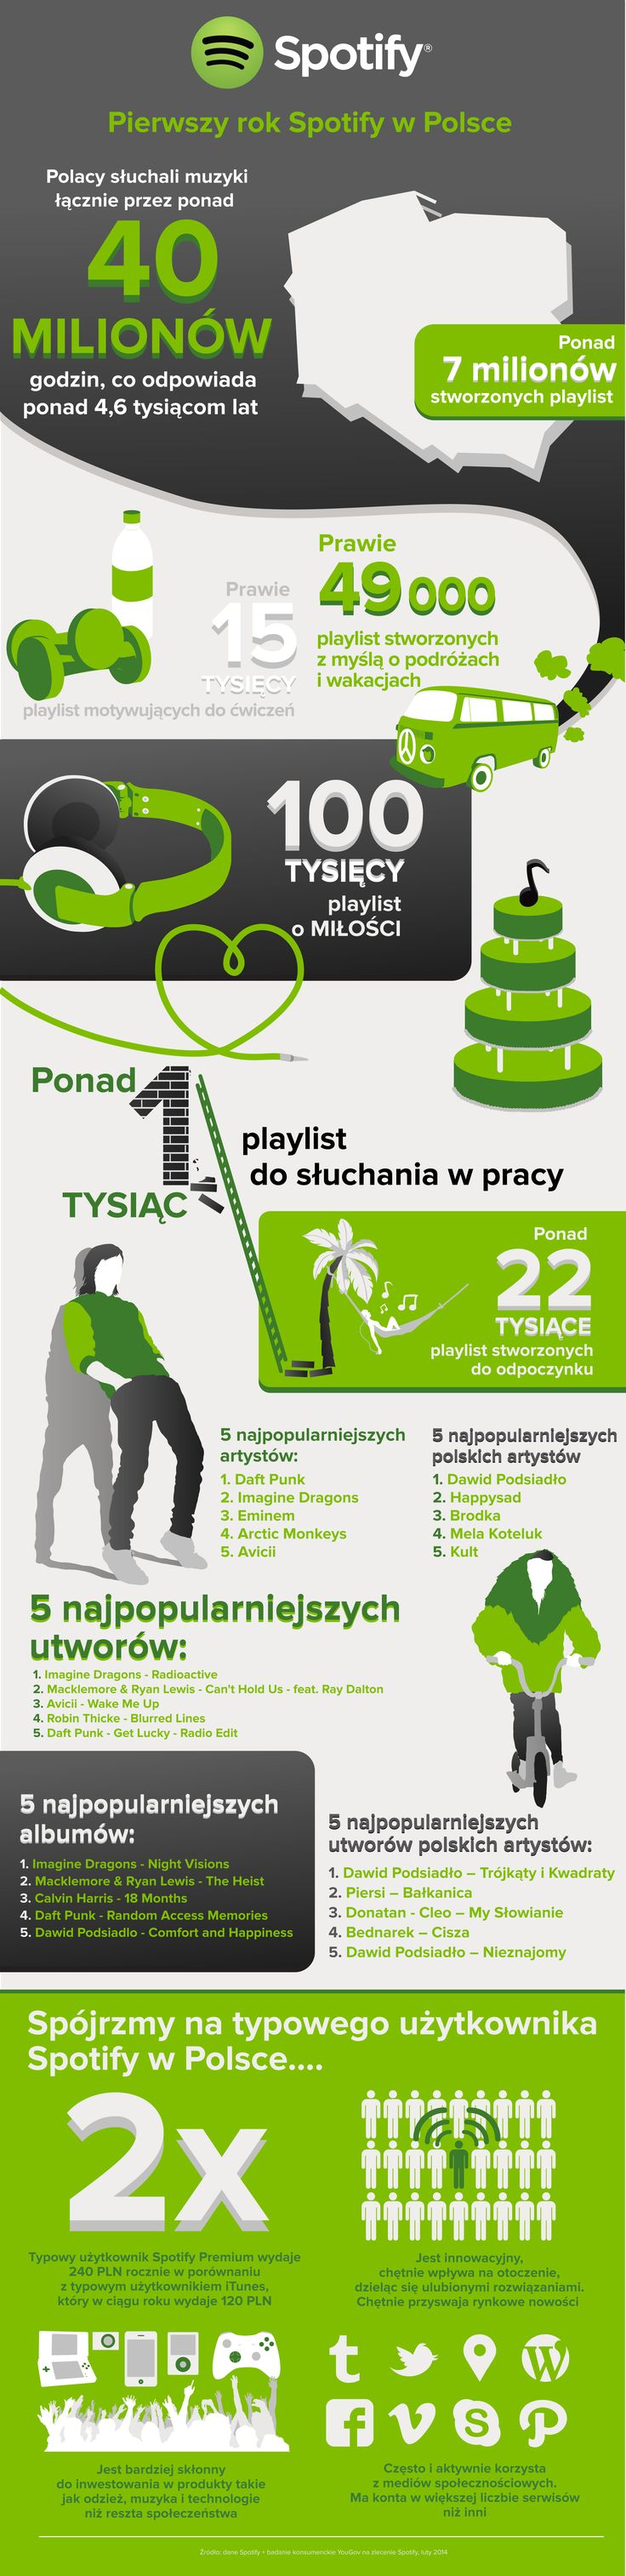 @Spotify's first year in #Poland